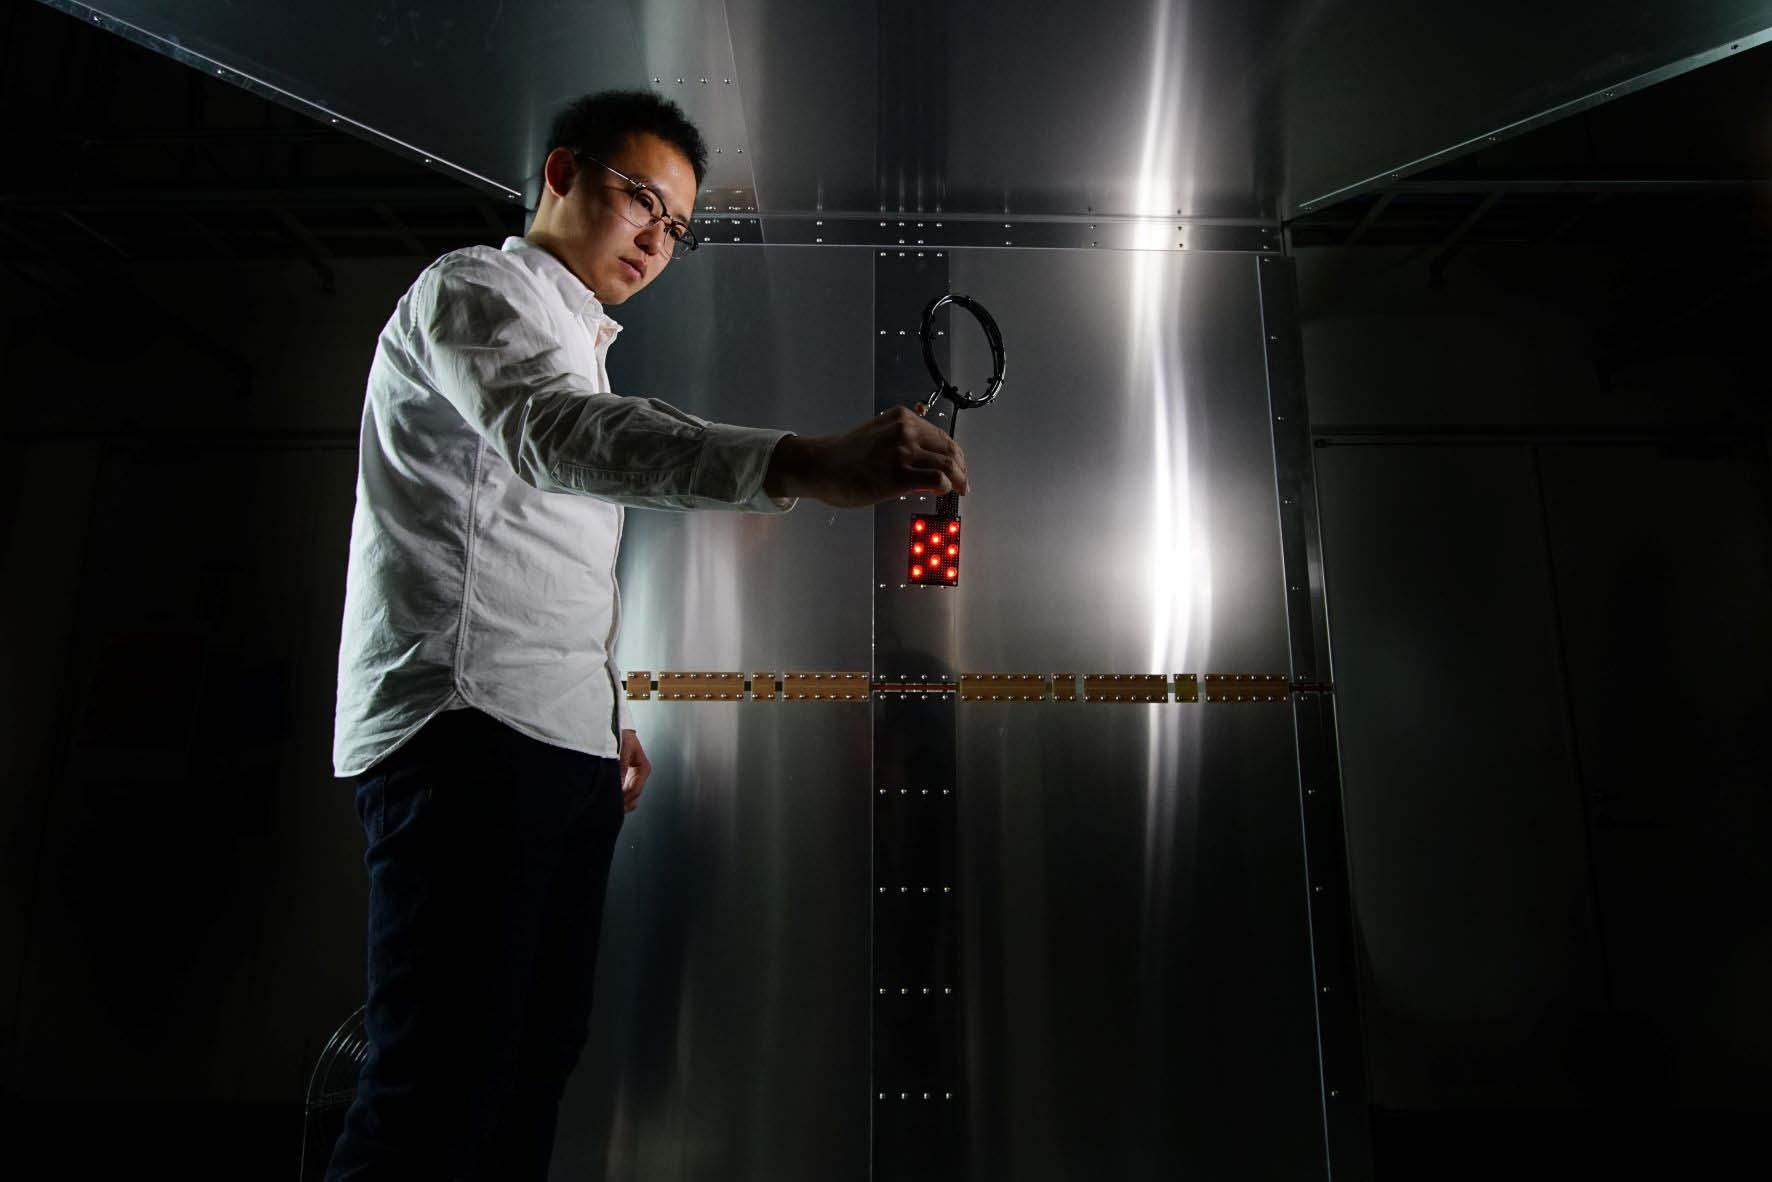 In a purpose-built aluminum test room, the researchers wirelessly powered electronics